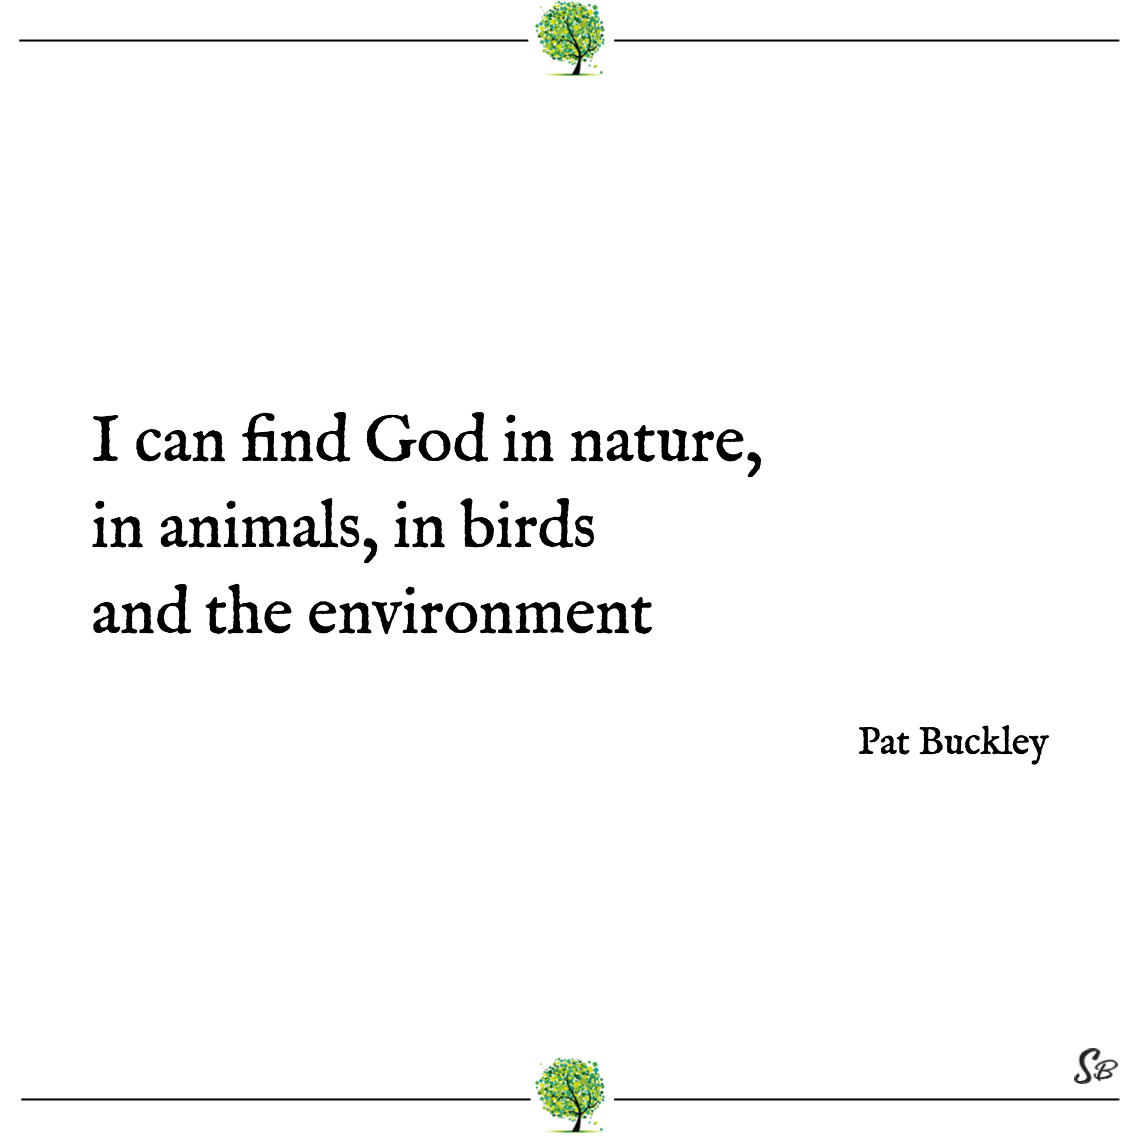 I can find god in nature, in animals, in birds and the environment pat buckley